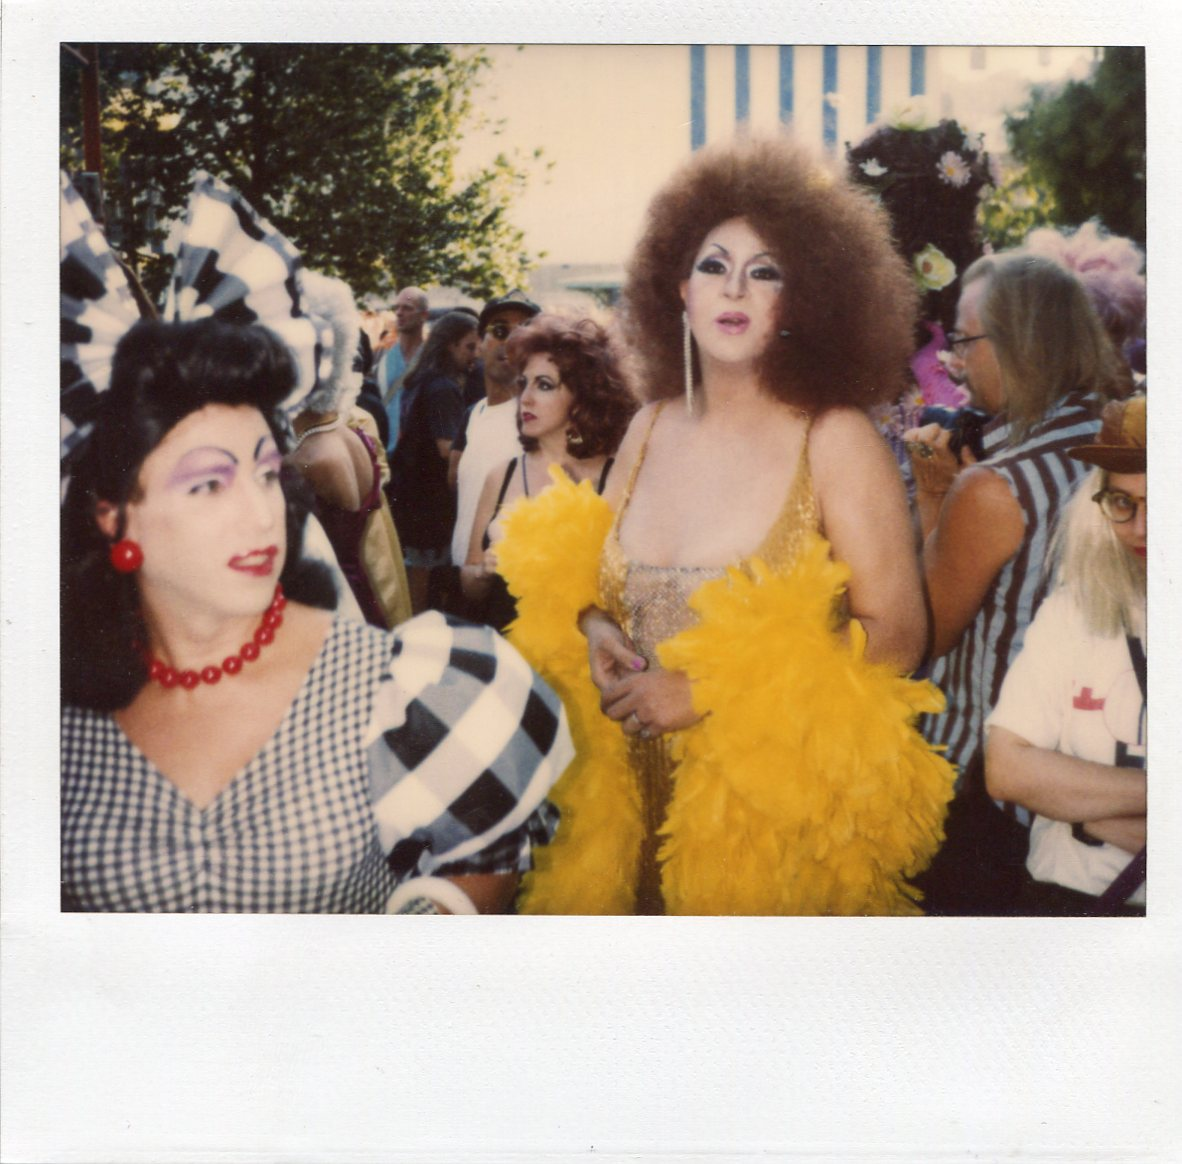 Peter Kwaloff (sp) and Dorian Corey ( what a storey) -Lady Miss Kier      photo by Lady Miss Kier